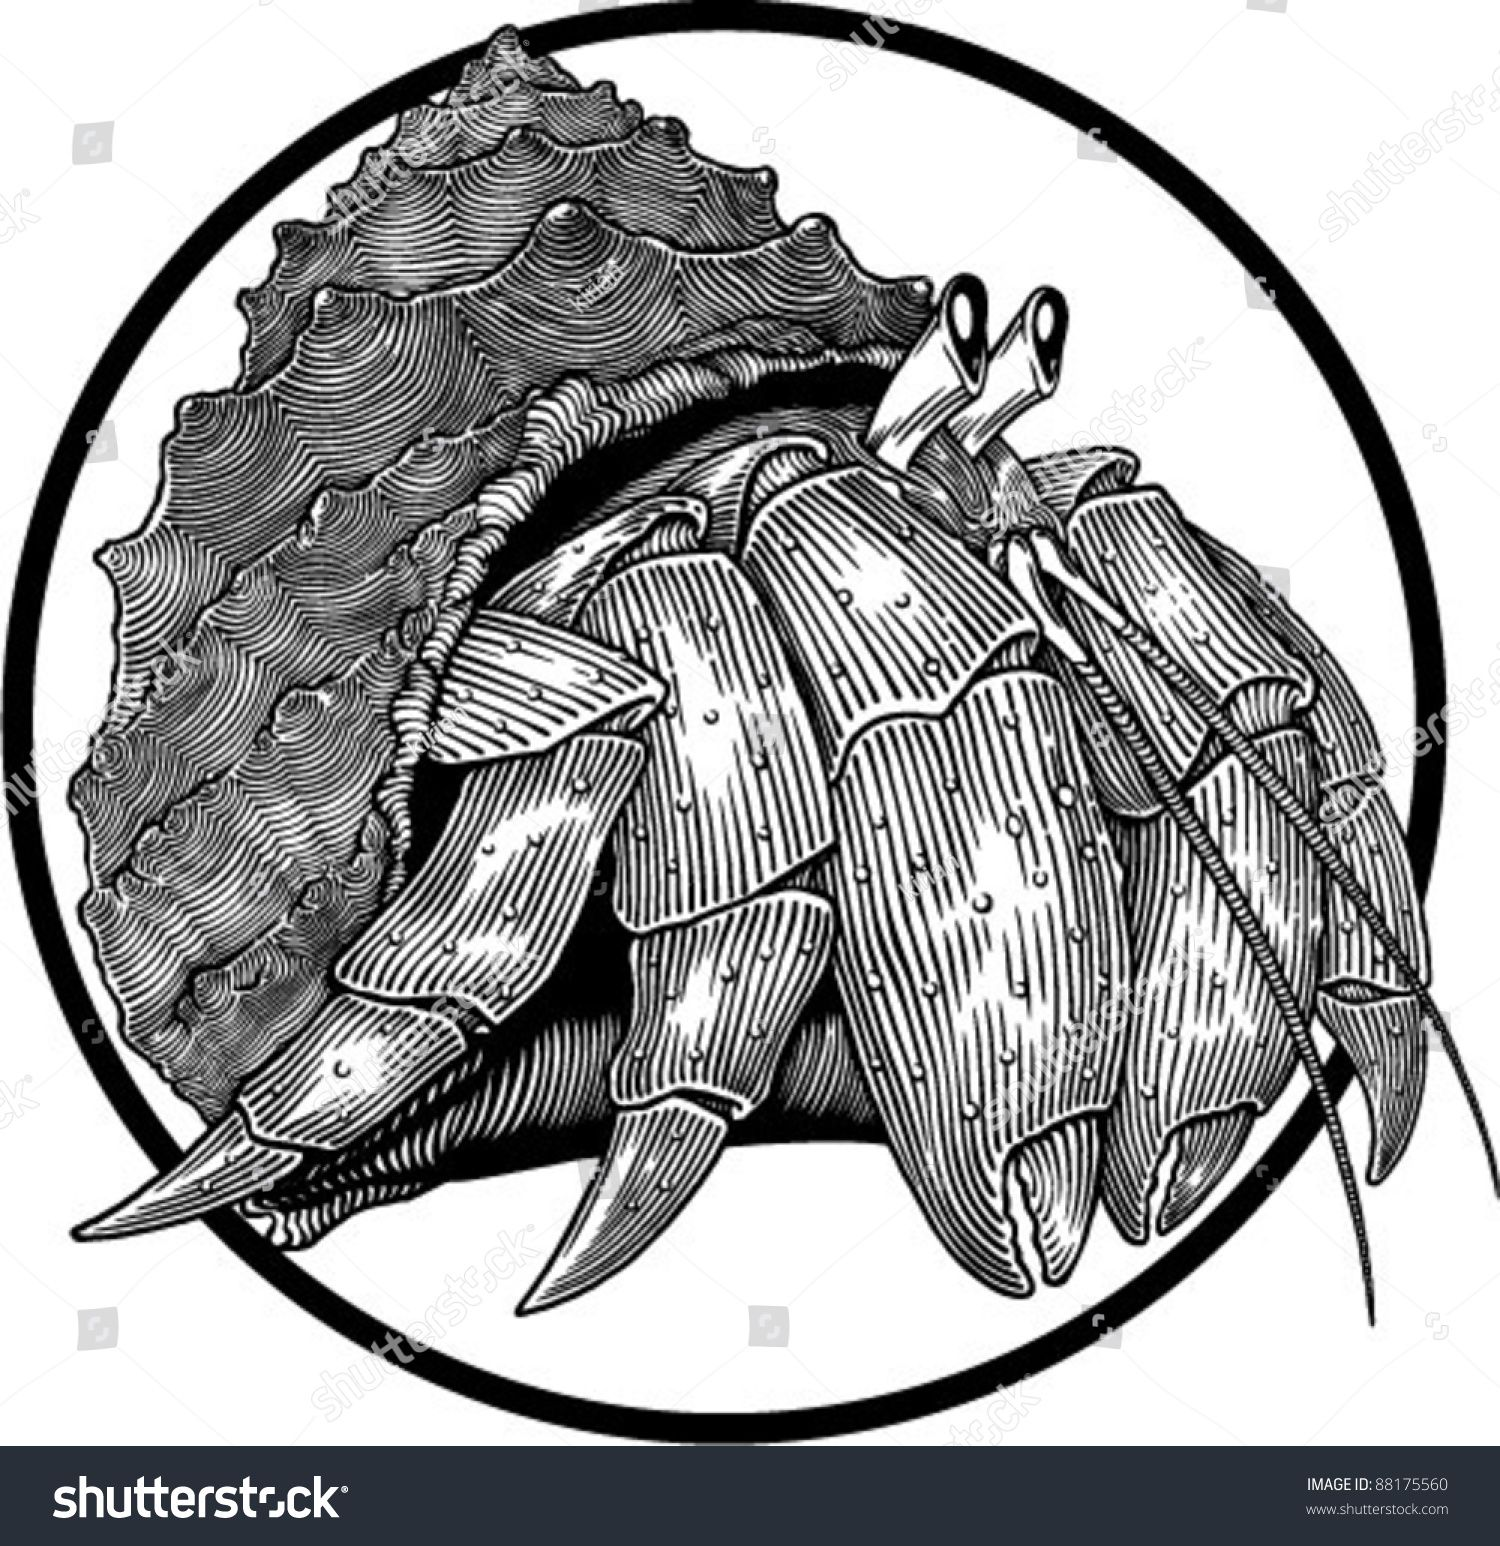 stock-vector-black-and-white-illustration-of-hermit-crab-engraving ...